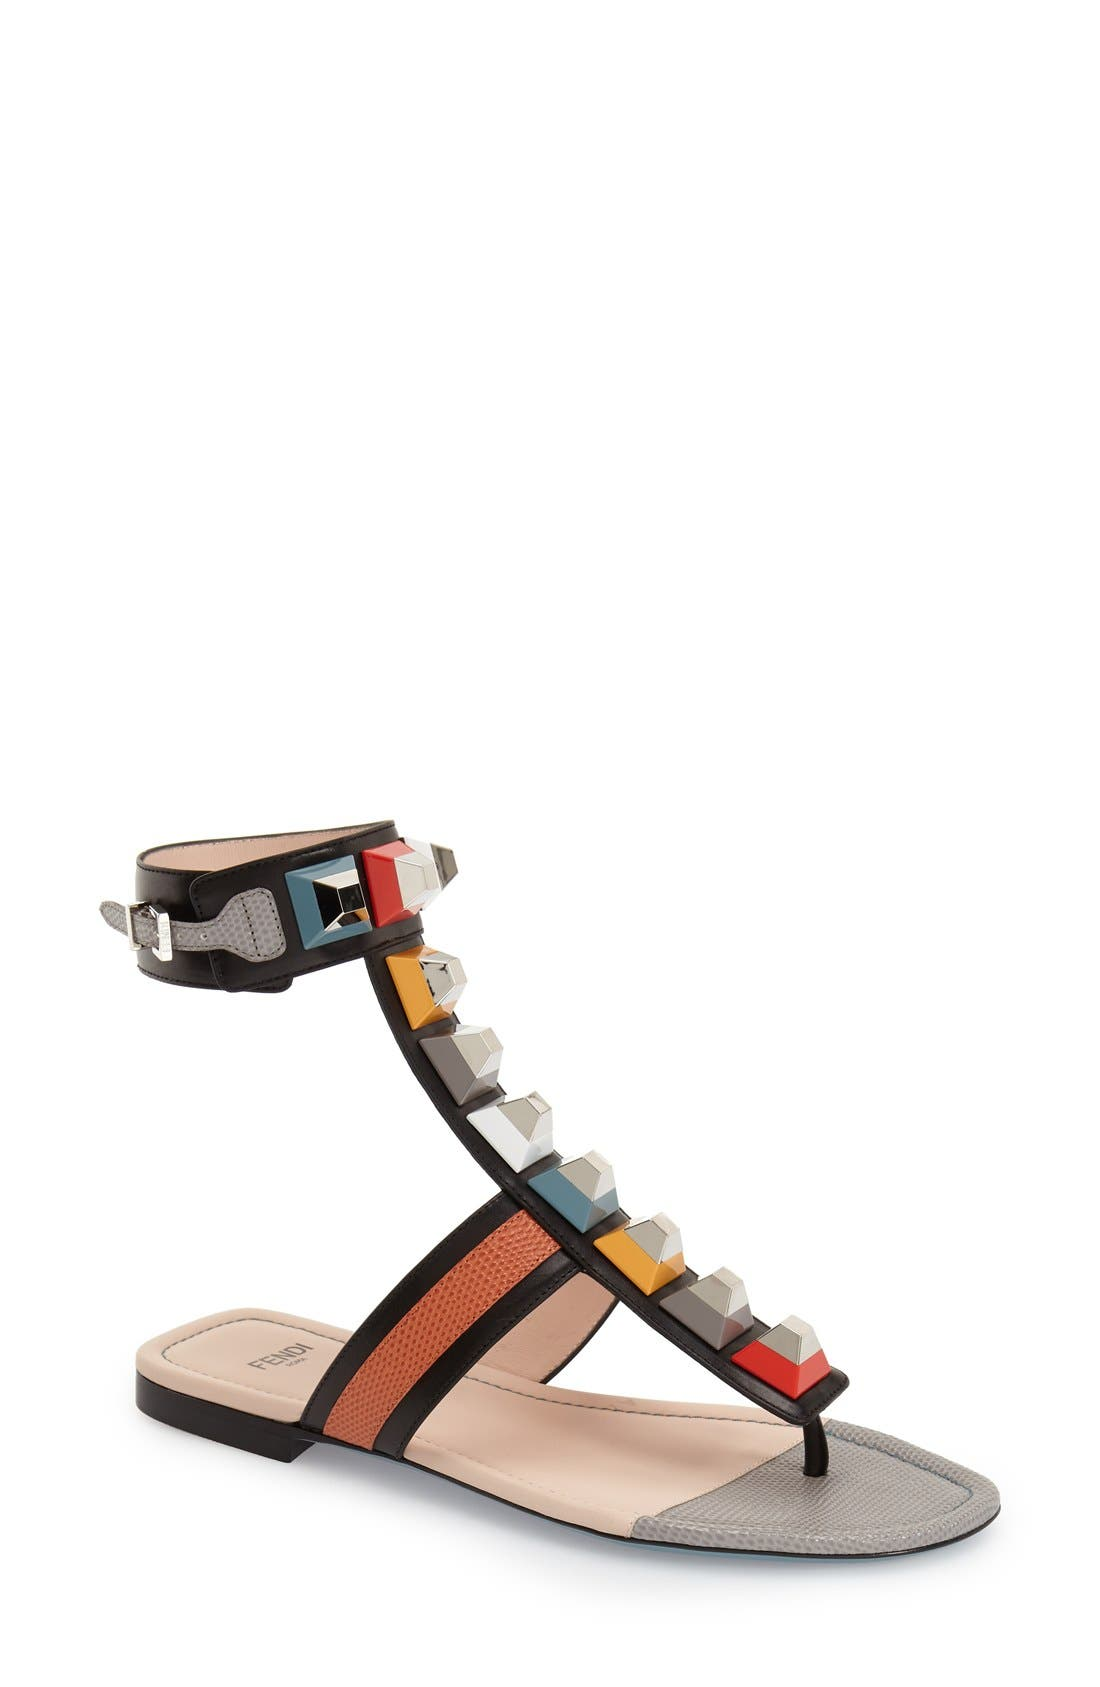 Alternate Image 1 Selected - Fendi 'Rainbow' Studded Colorblock Gladiator Sandal (Women)